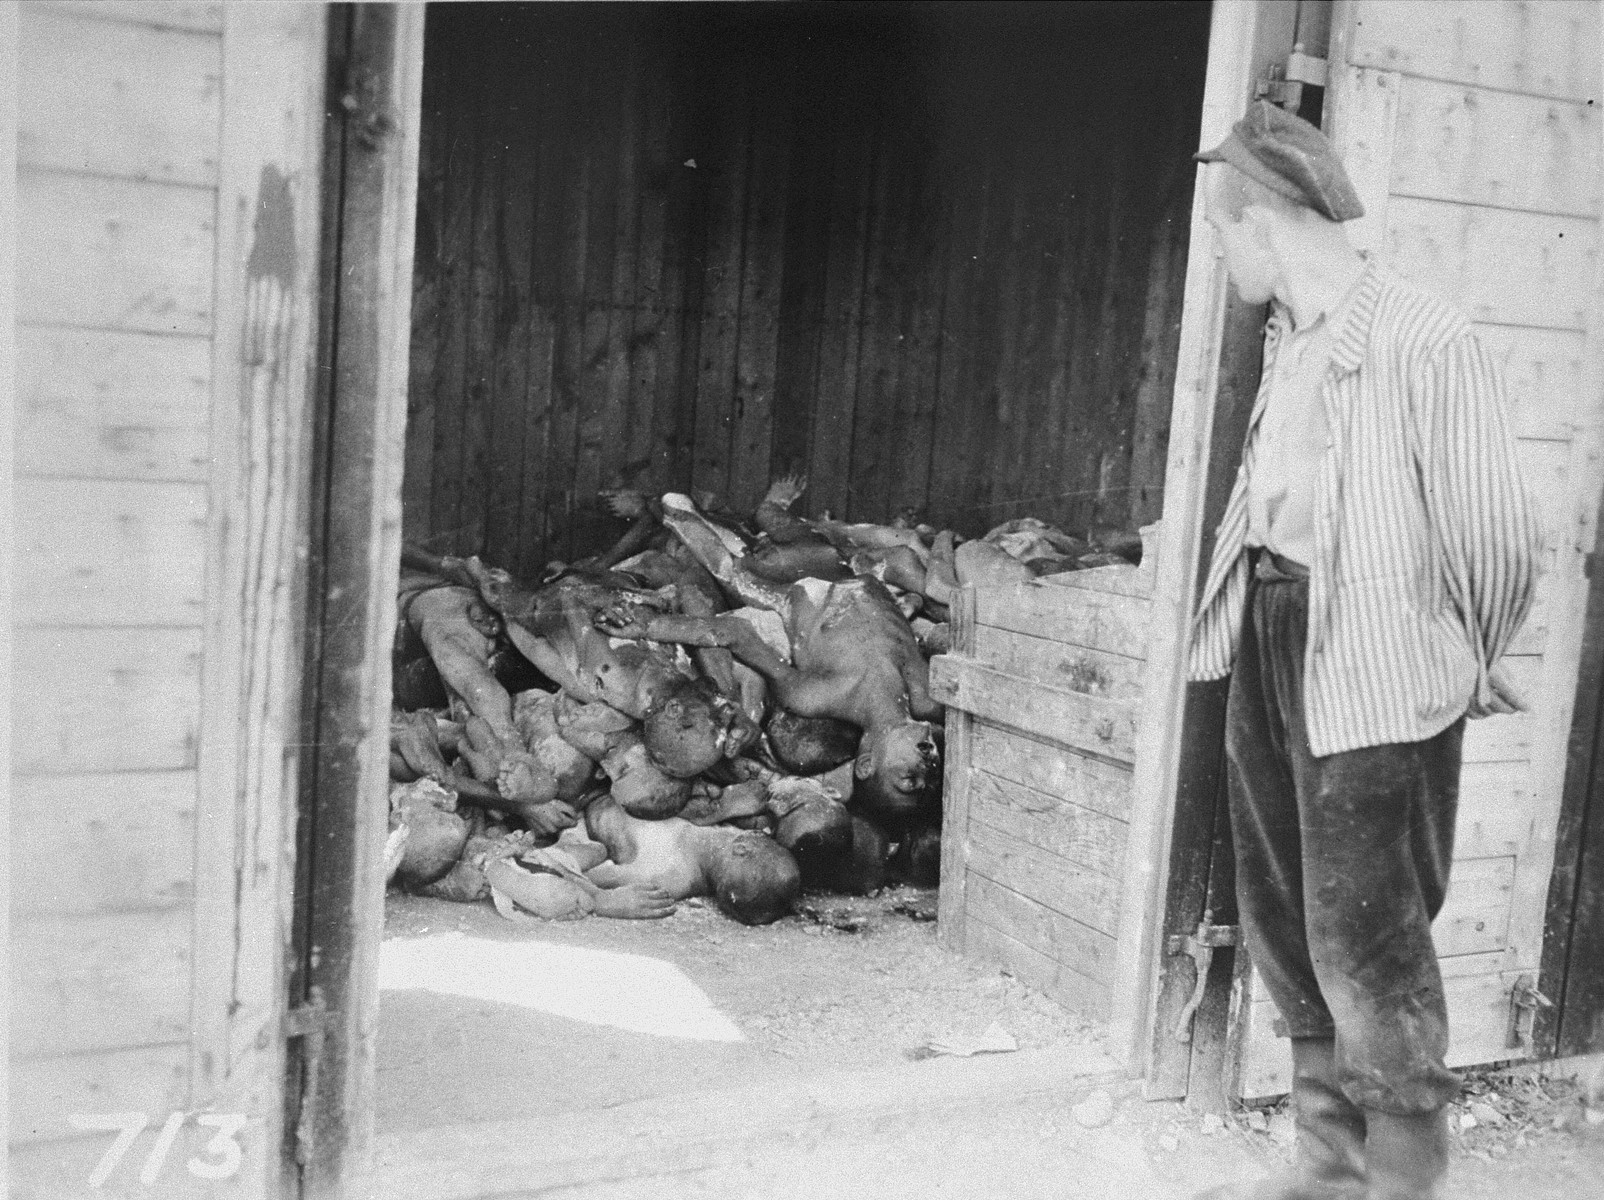 A survivor views a pile of bodies stacked in a shed in the Ohrduf concentration camp.